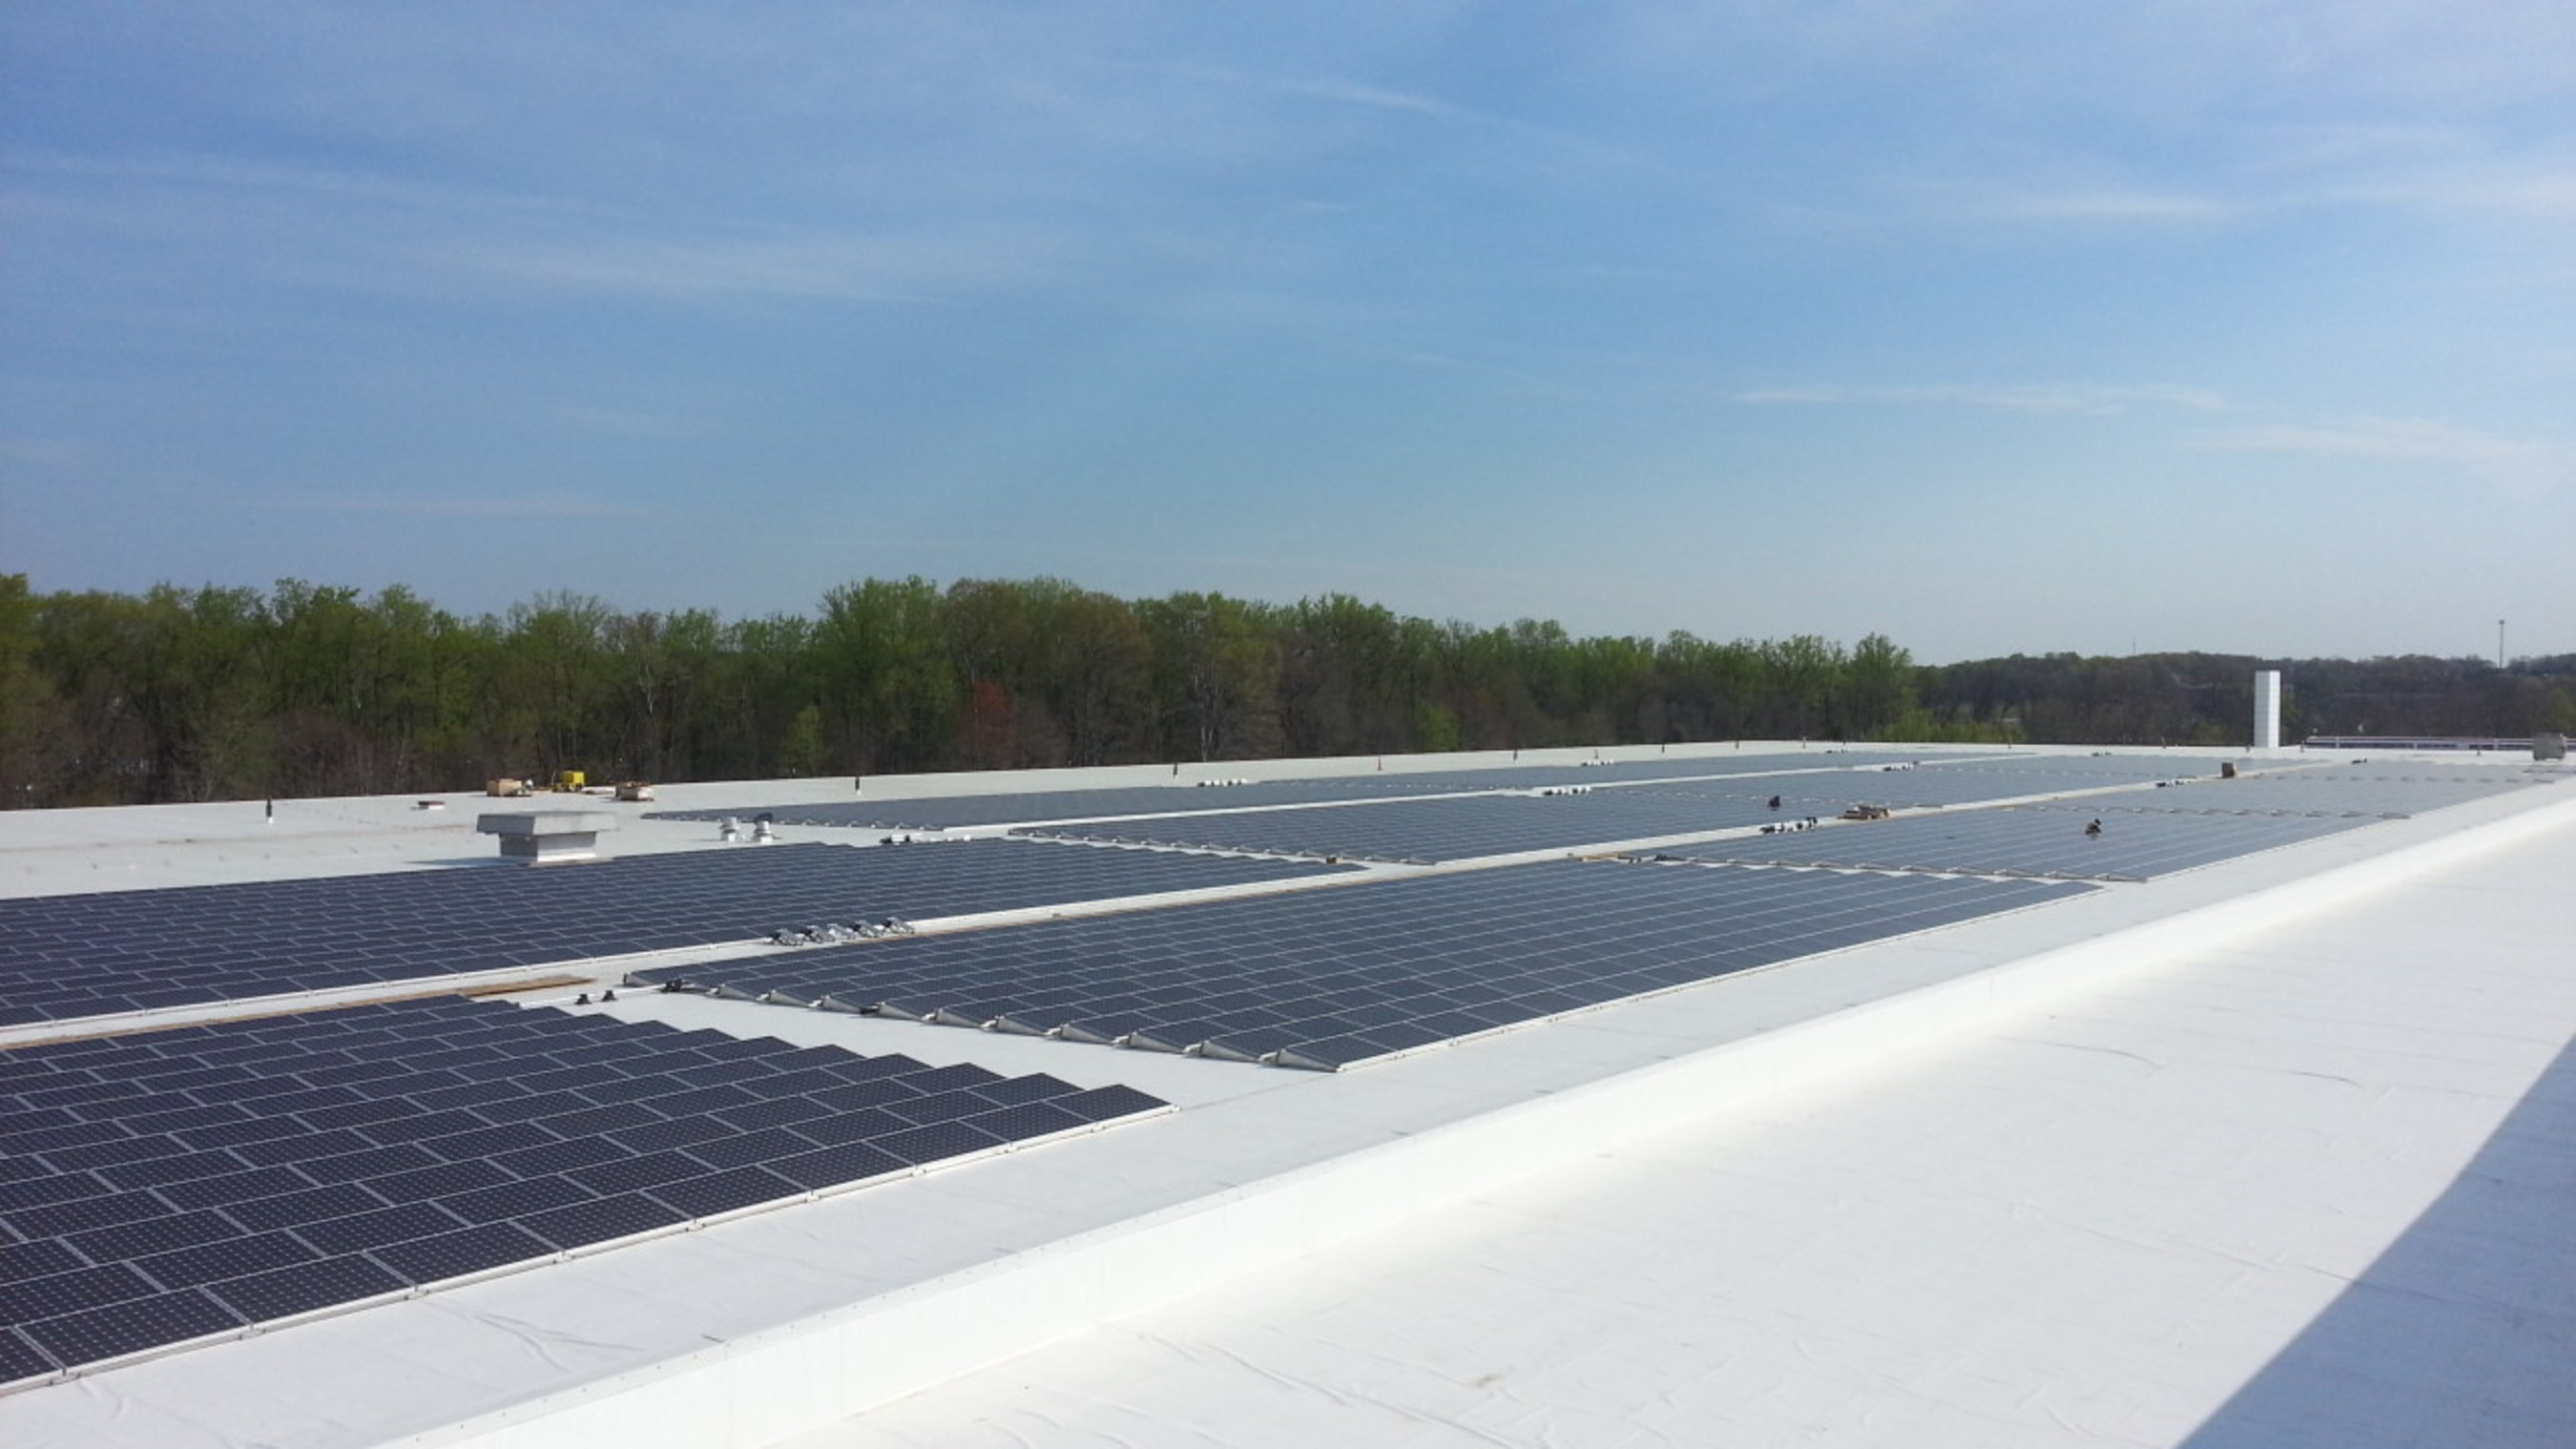 A SunPower Helix system is being installed at Macy's in Joppa, Md. It is one of 71 SunPower systems expected to be operational at Macy's and Bloomingdale's stores by the end of 2016.